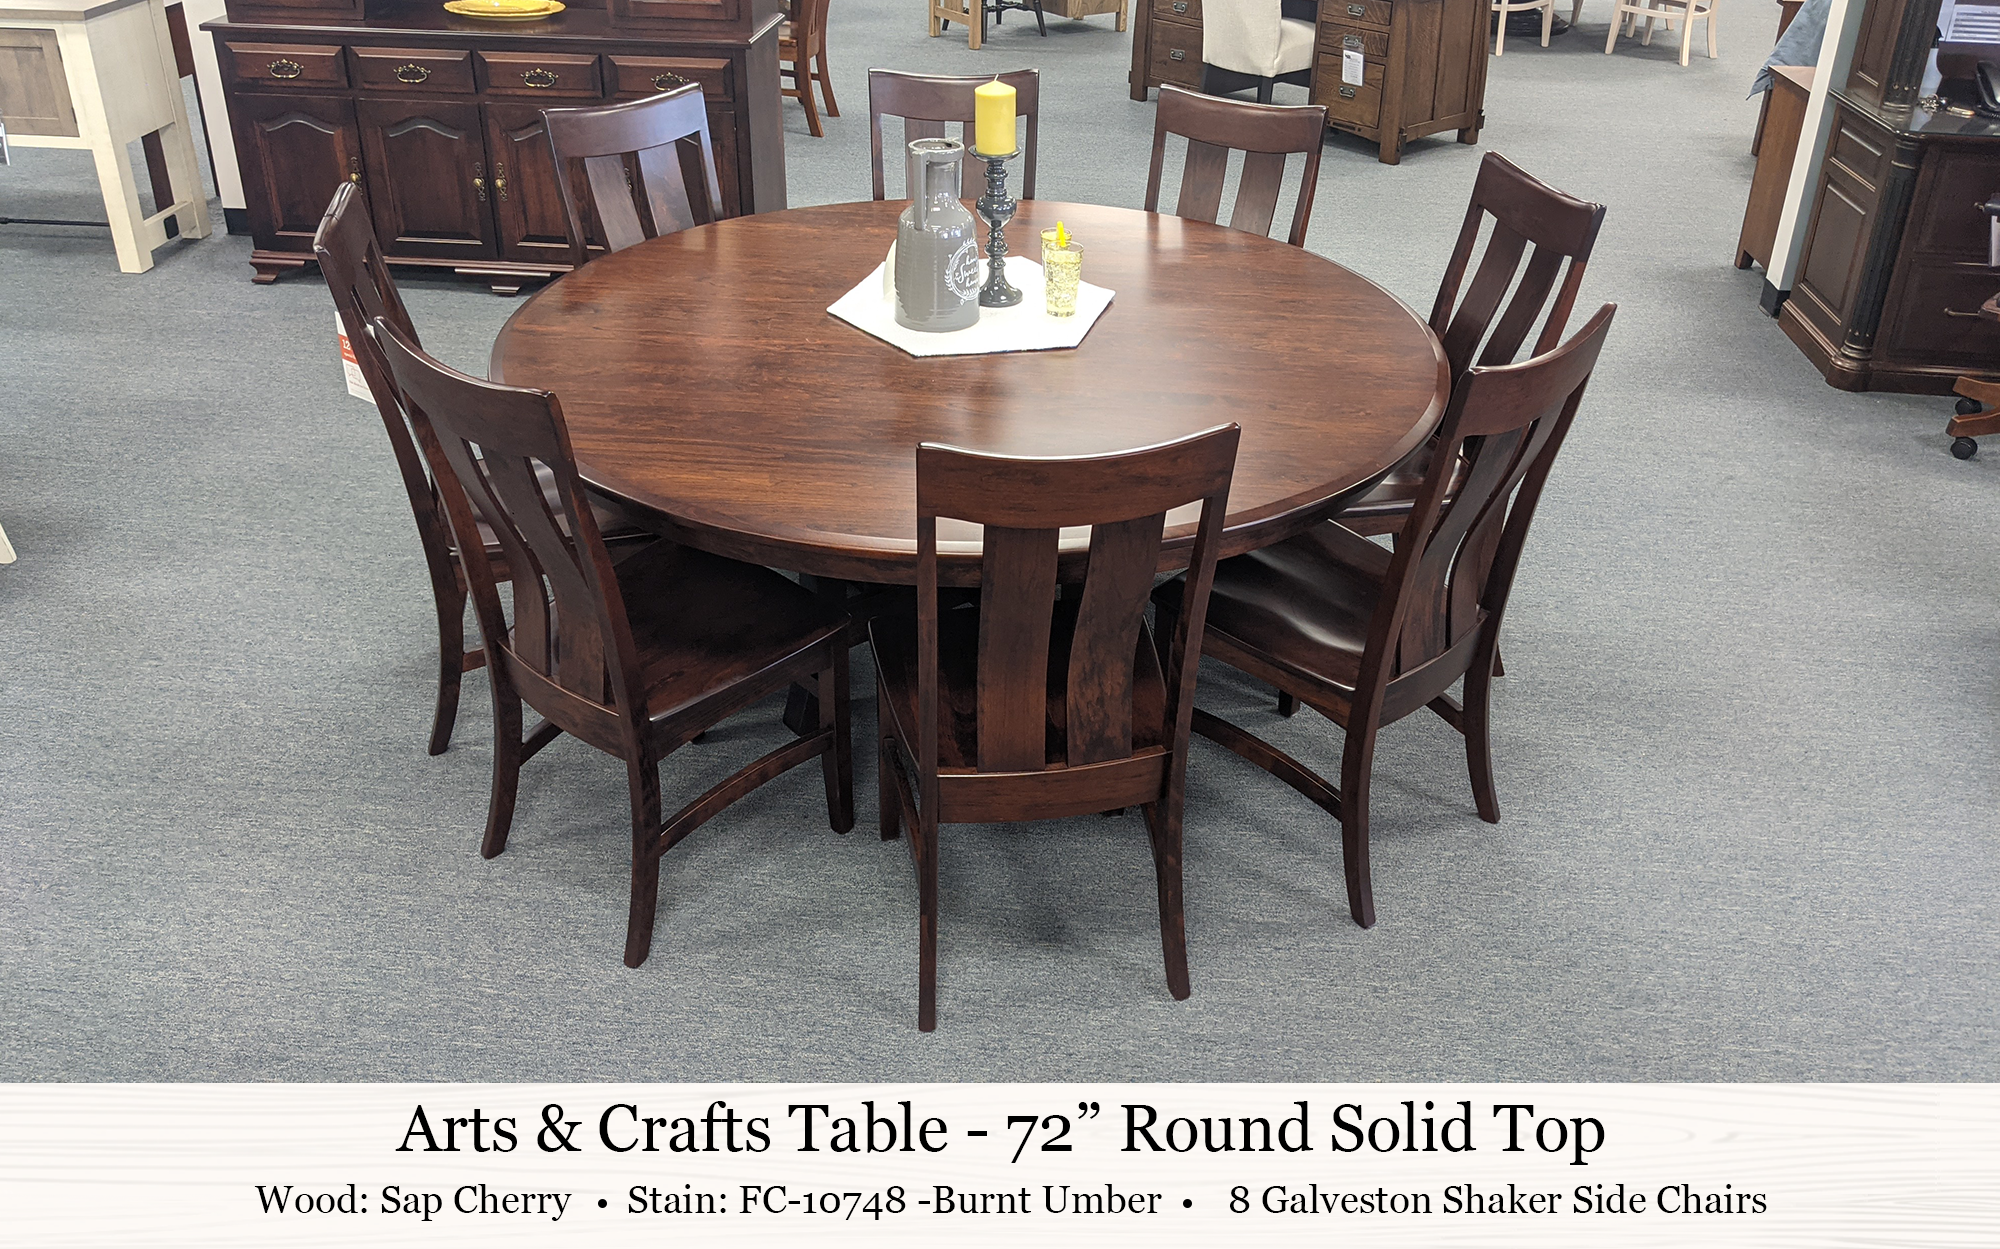 Arts And Crafts Table Galveston Shaker Chair